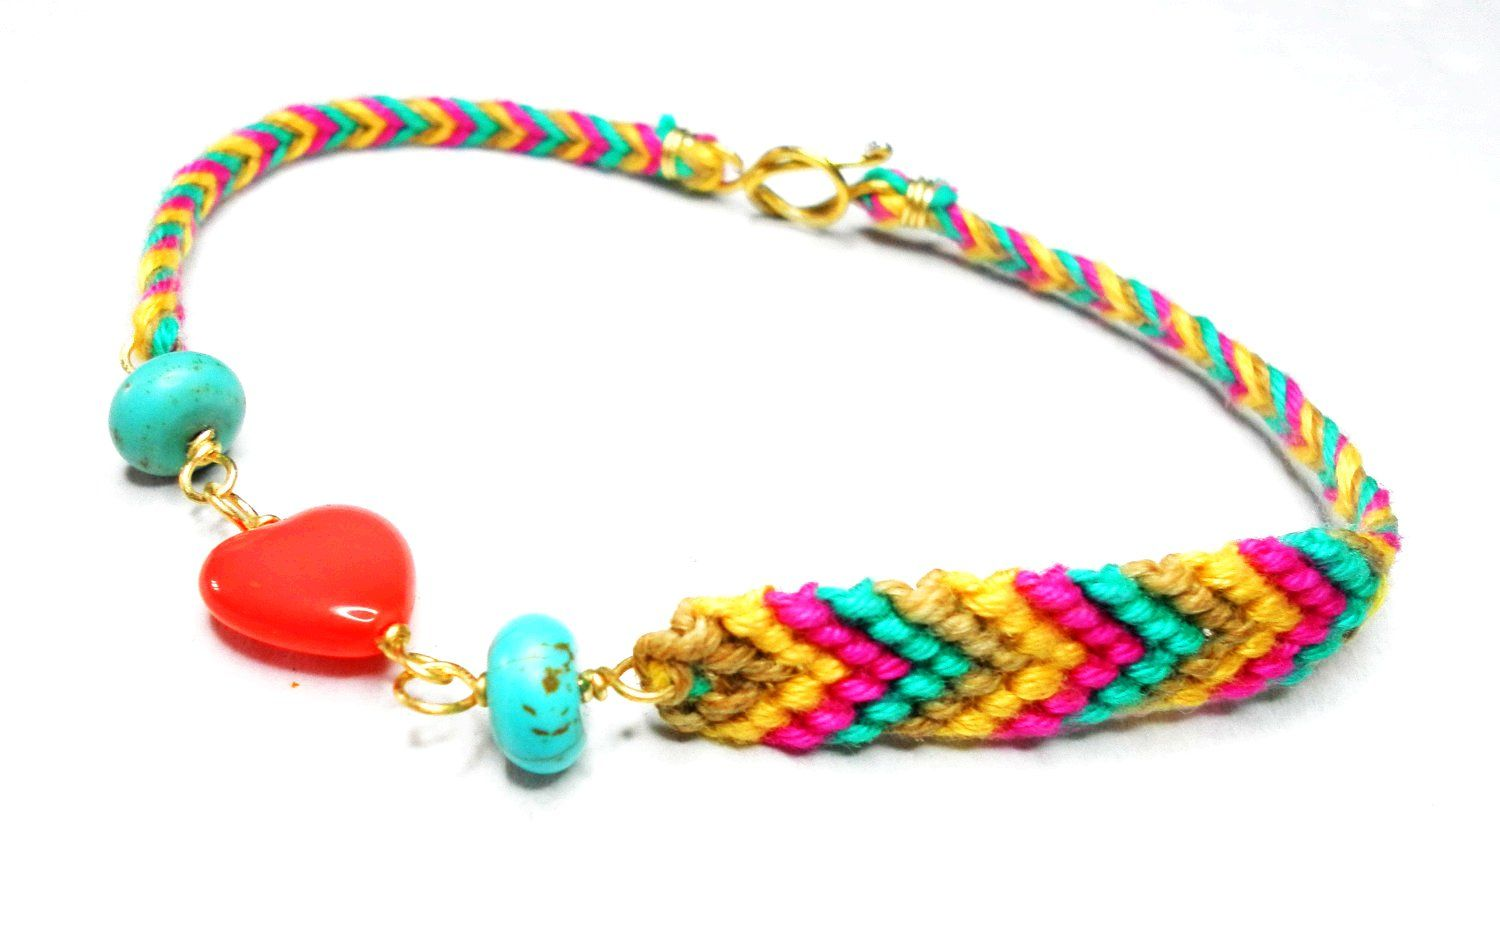 braided wrist ebay hippieyle ankle x thread friendship itm bracelets colorful bands